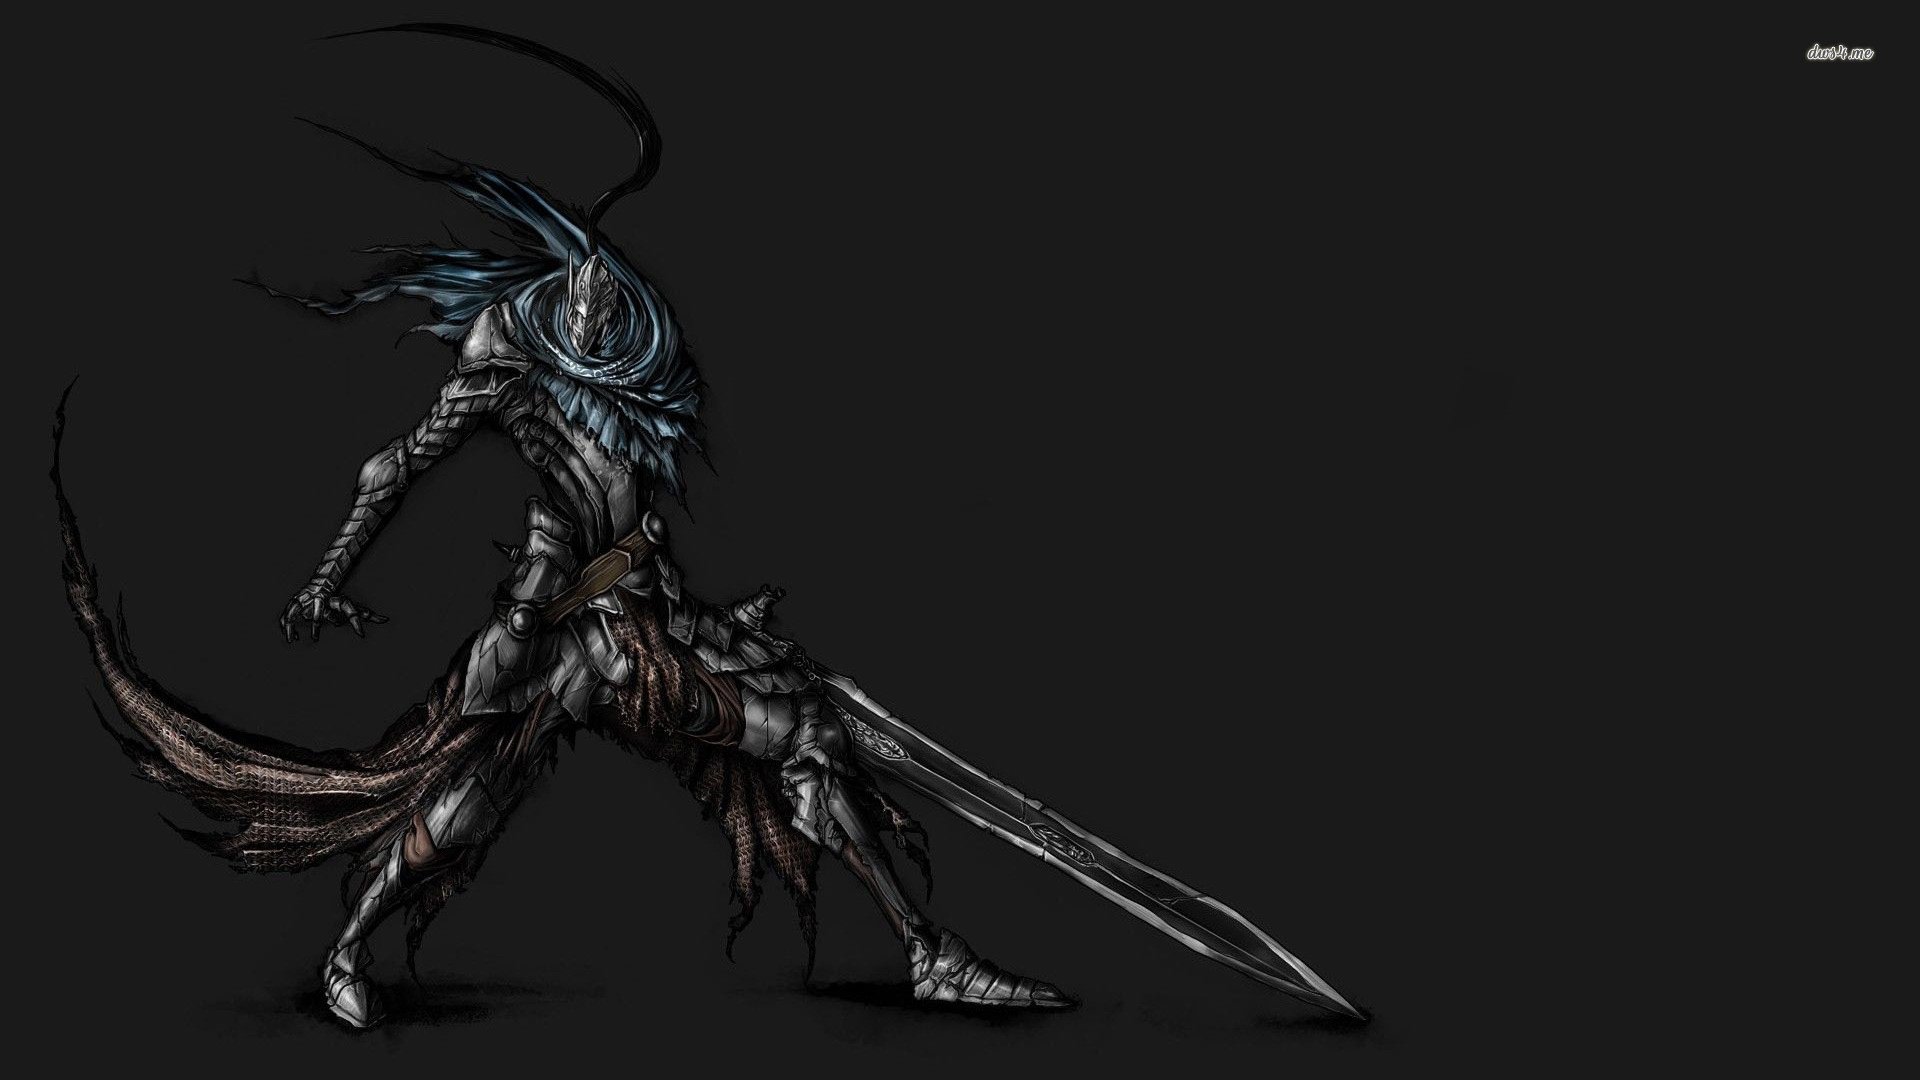 1920x1080 ... Knight Artorias from Dark Souls wallpaper  ...